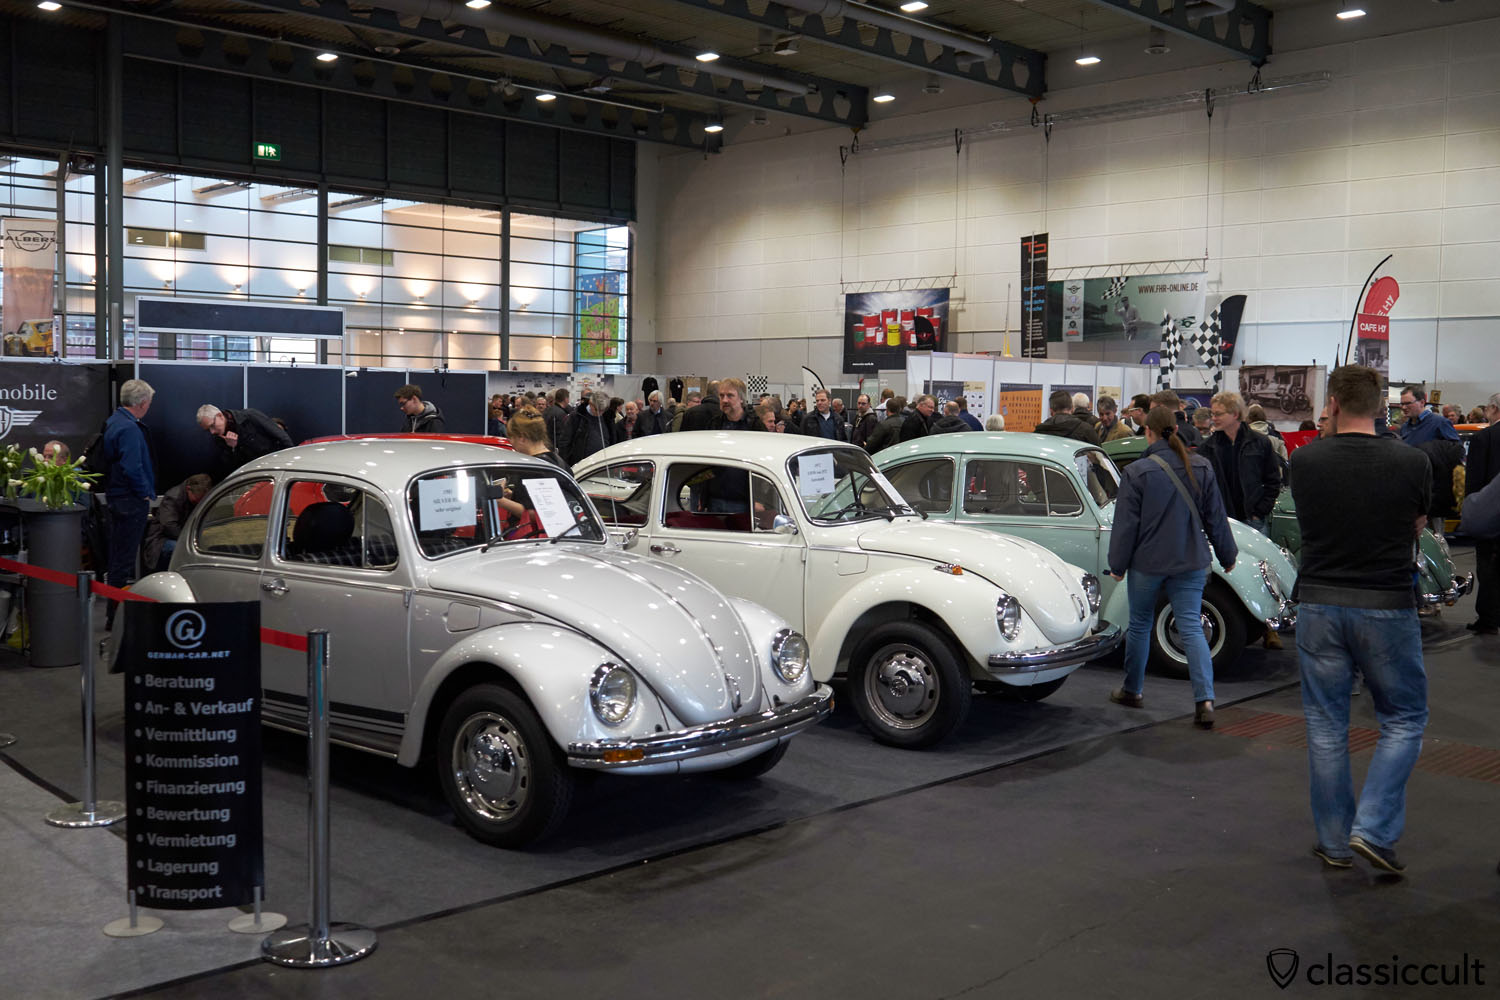 VW Beetles for sale, 1981 1200L Silver Bug Special Edition for 13900 EUR, or 1972 1303S for 18900 EUR, mithomobile